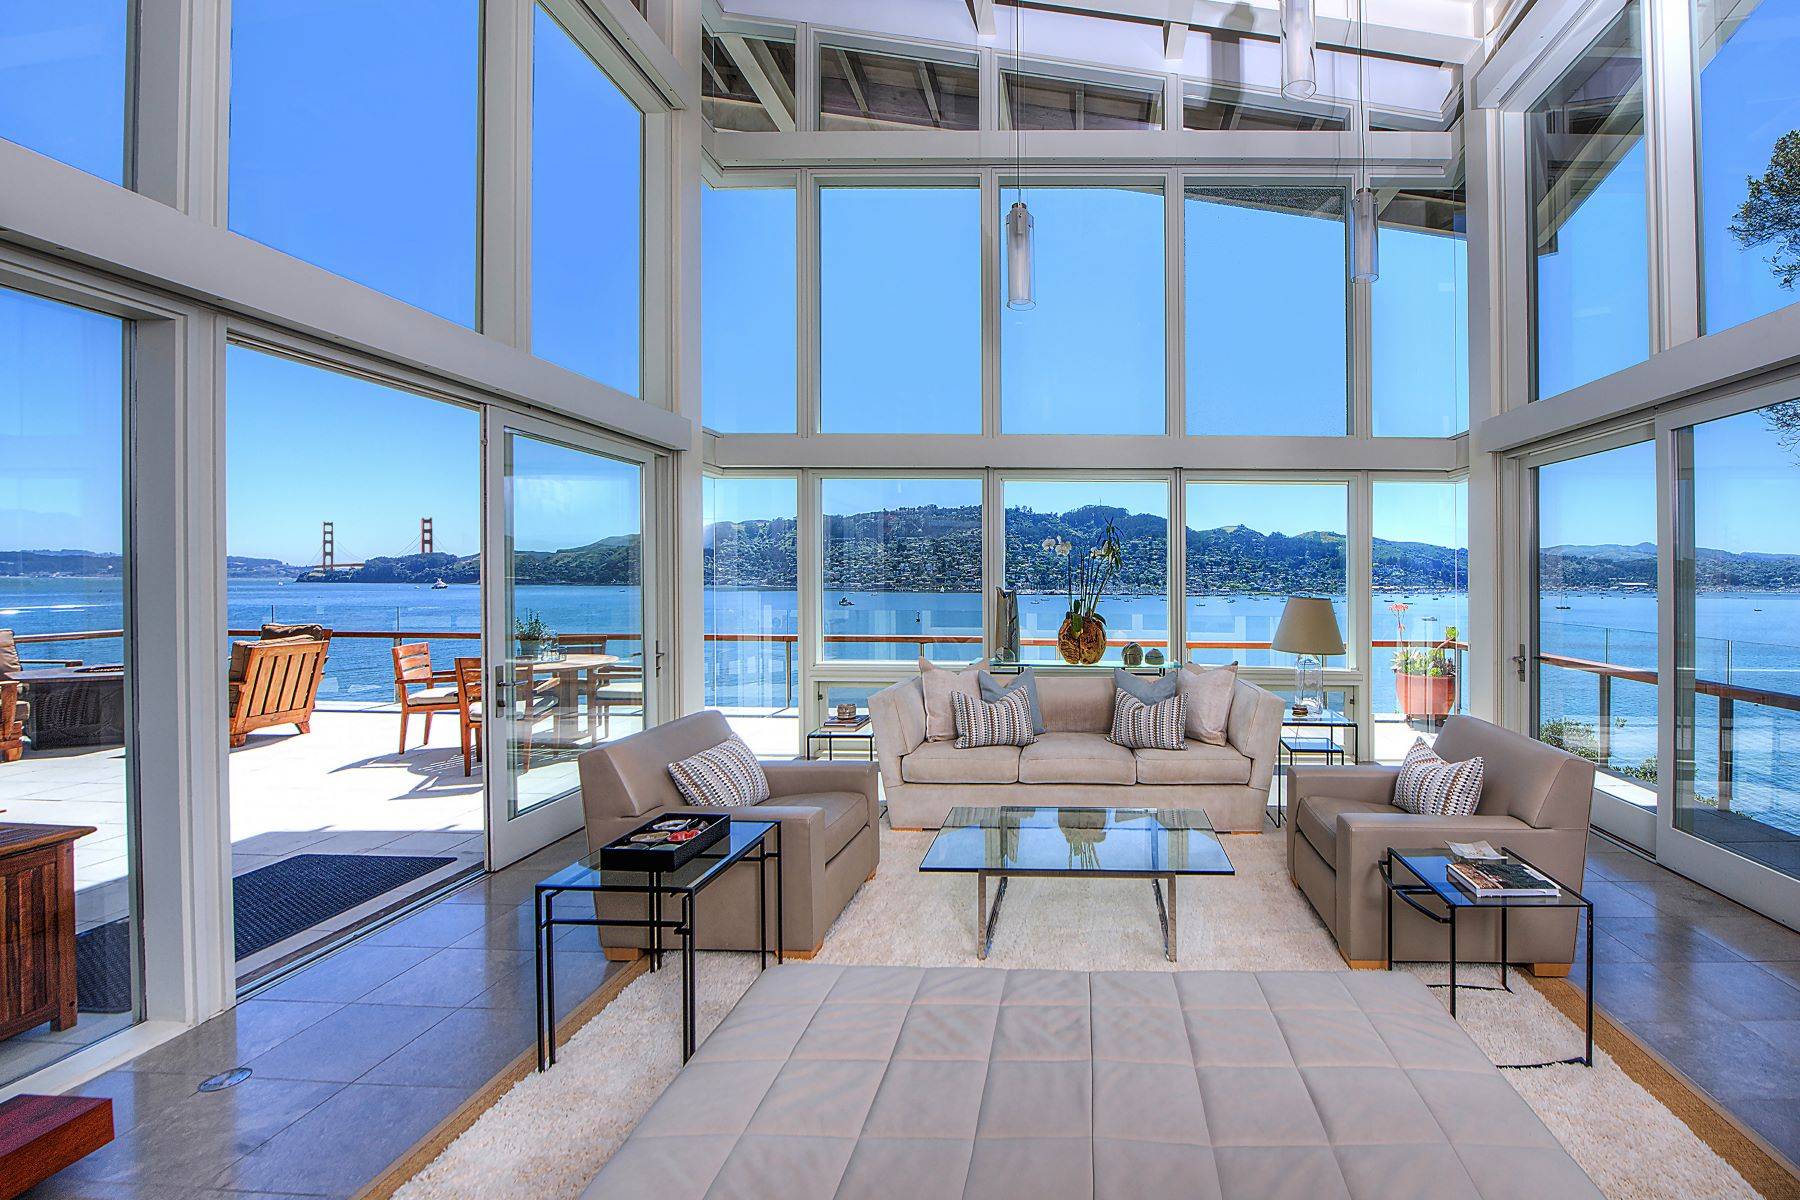 House for Sale at Cliffside Contemporary 8 Cliff Road Belvedere, California 94920 United States